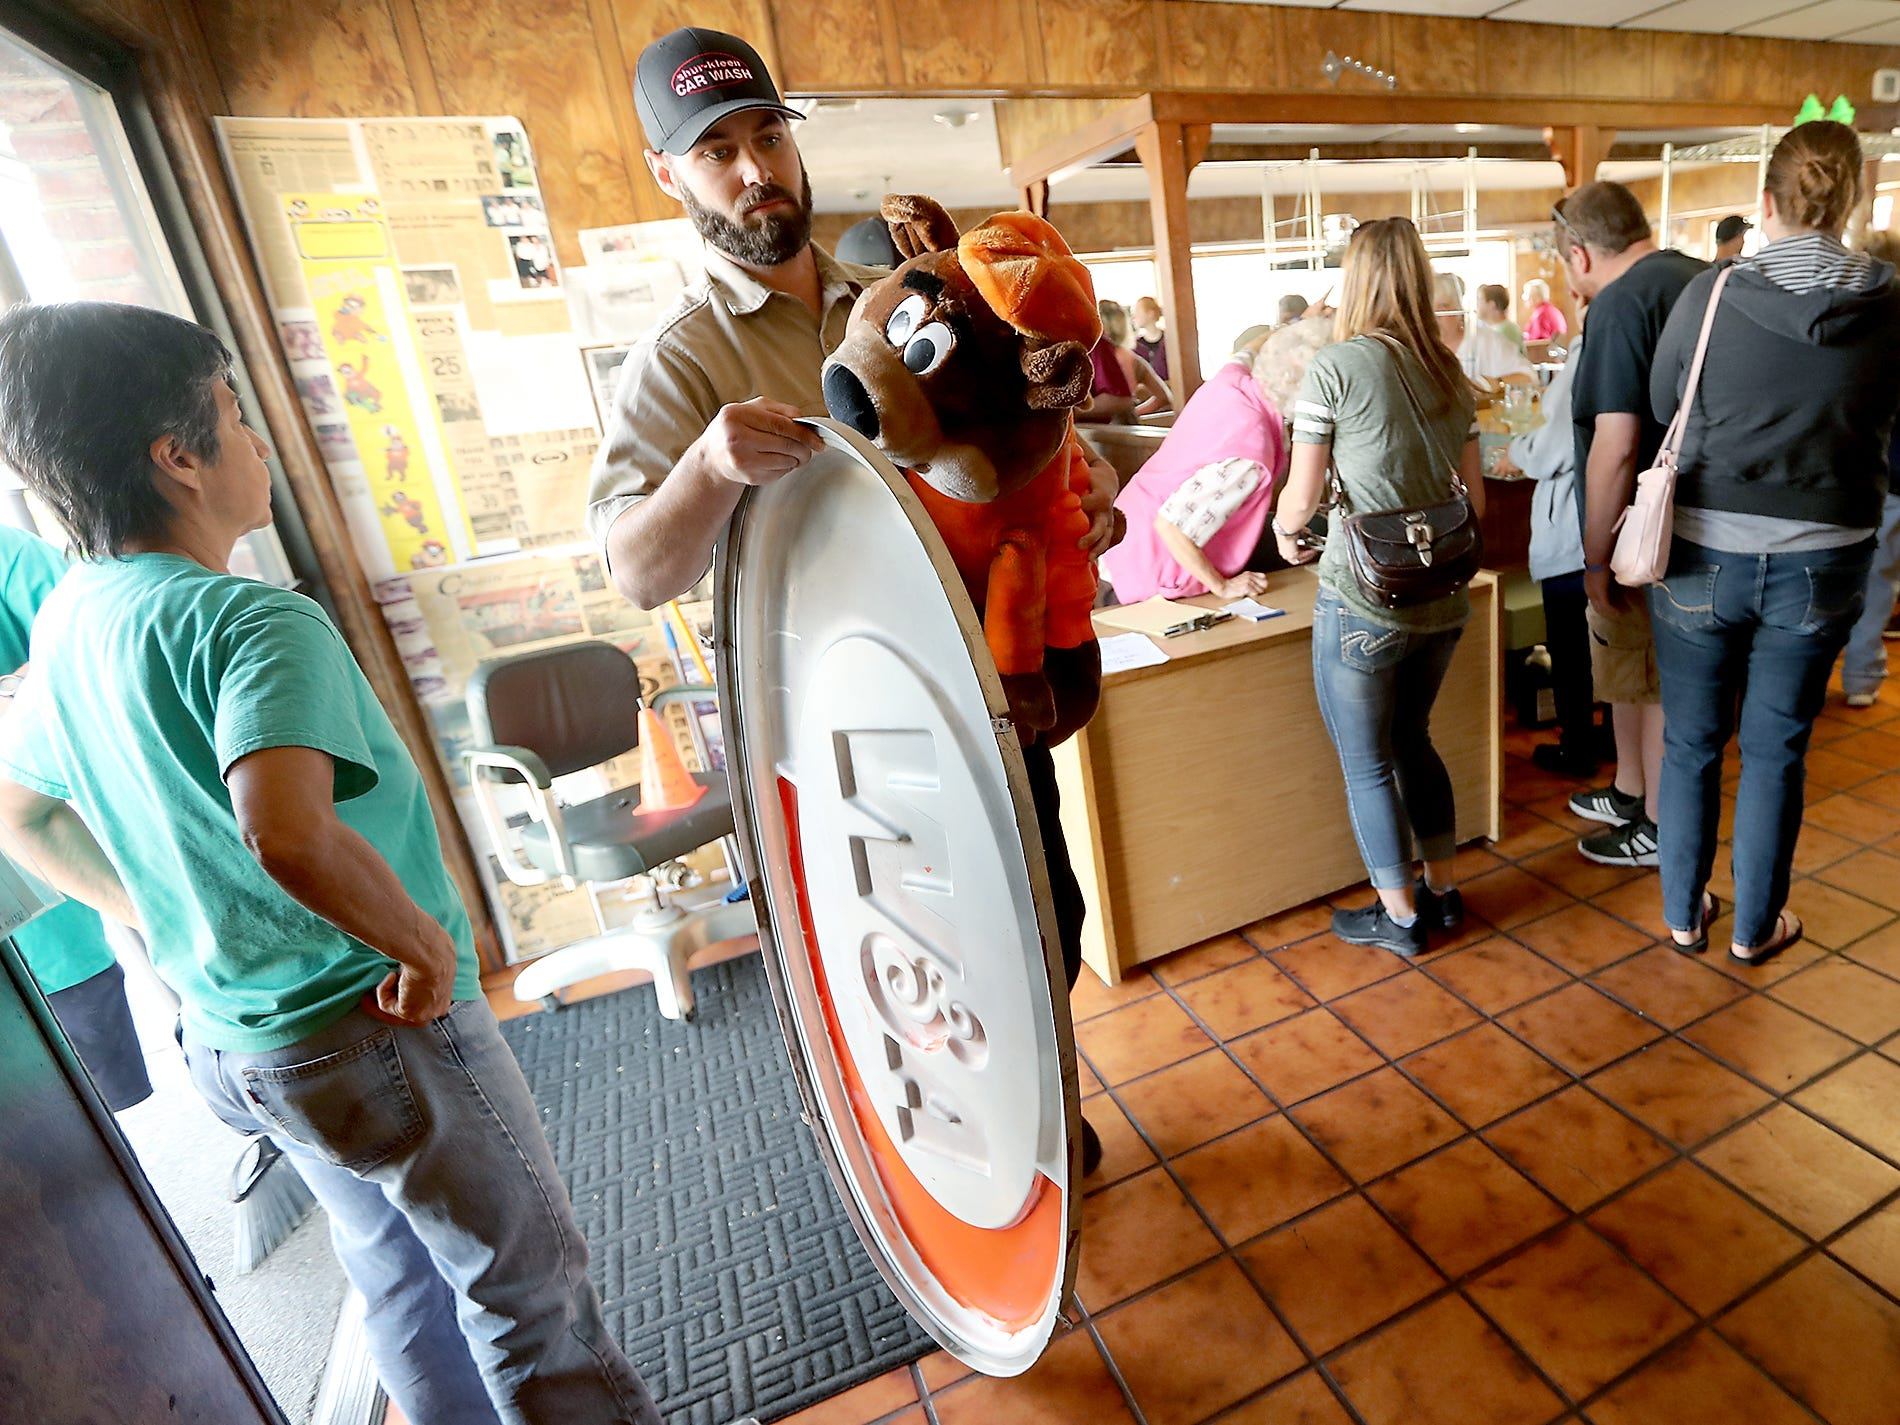 Jonny Laing, of Lacy, carries an A&W sign and a stuffed Great Root Bear (the mascot for A&W Root Beer) as he heads for the checkout line during a sports memorabilia giveaway and restaurant equipment sale at the A&W in Port Orchard on Wednesday, August 29, 2018.